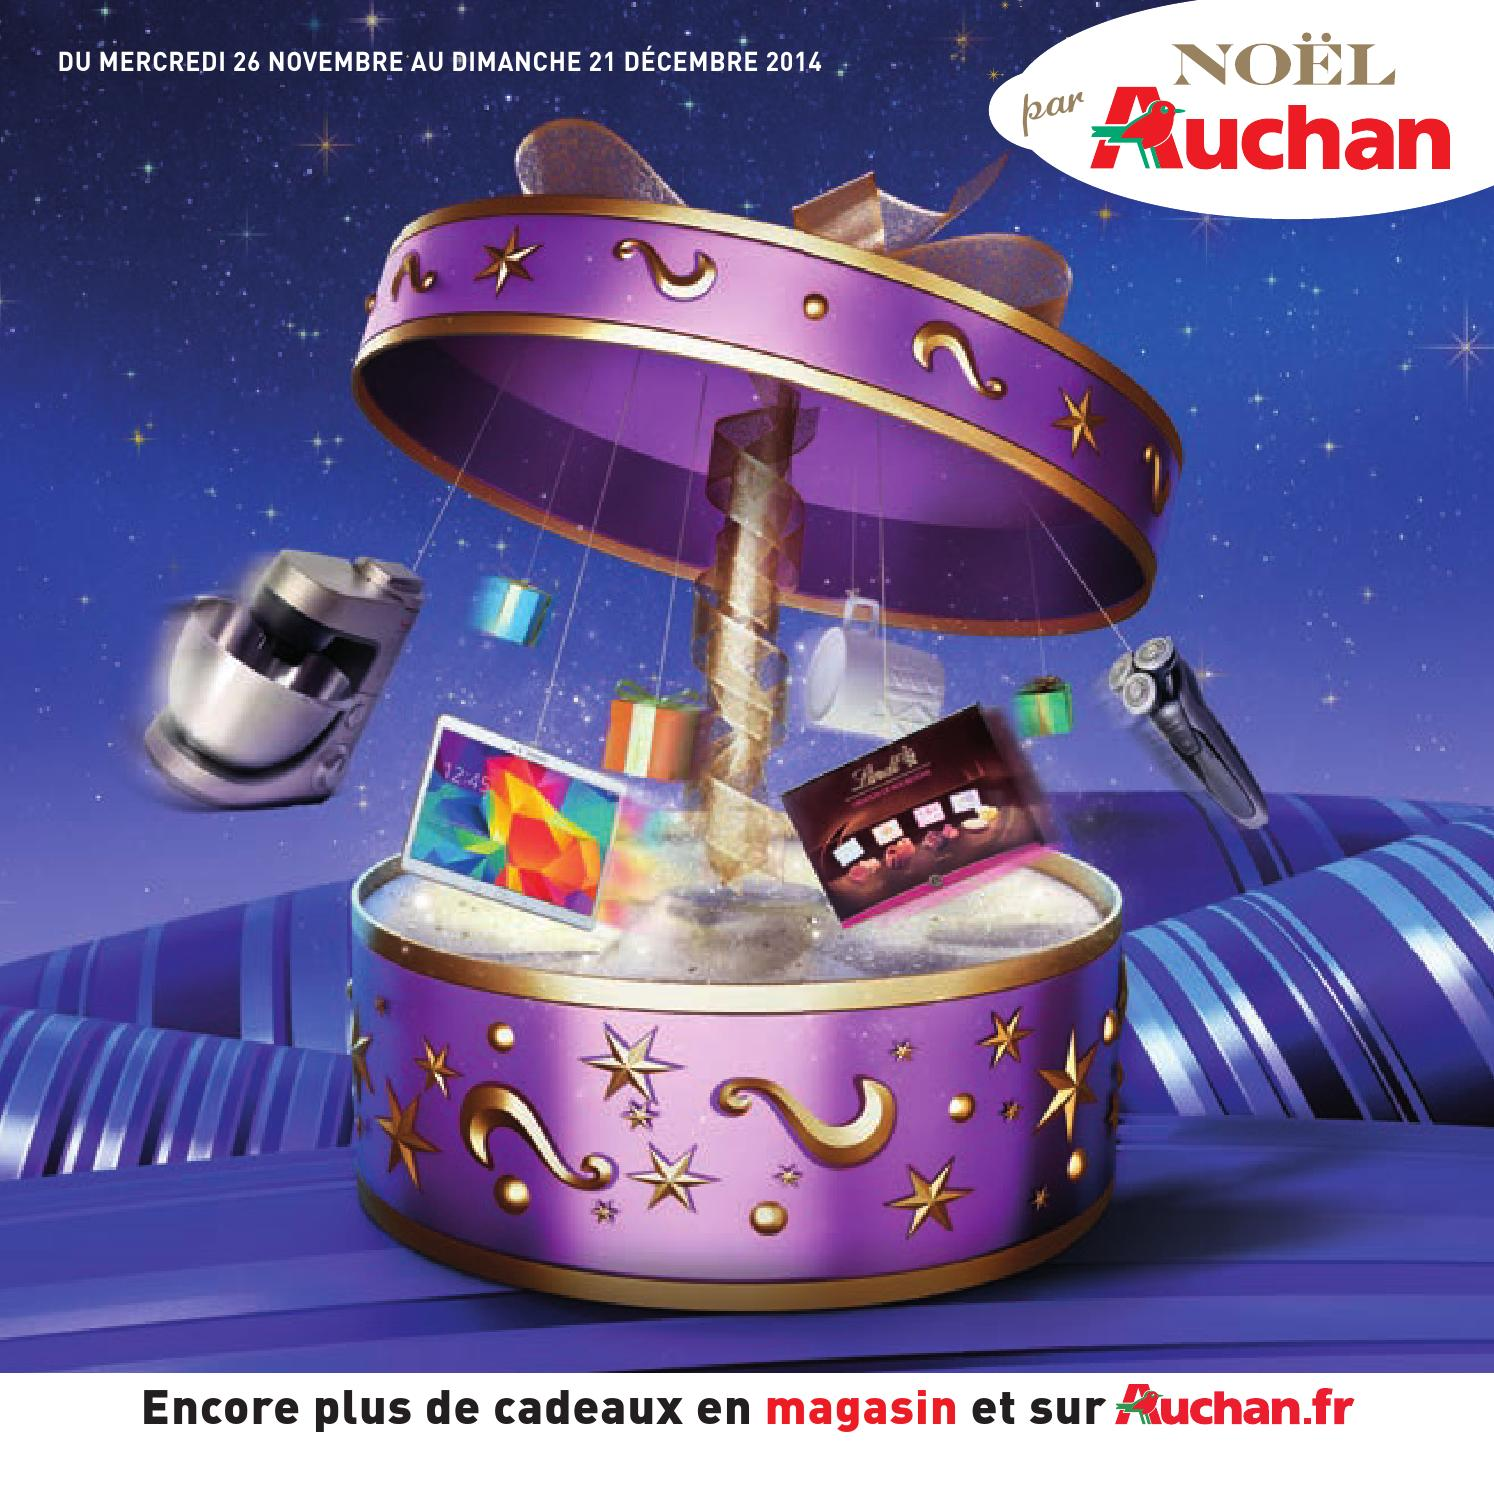 354963bf989 Auchan cadeauxvc cat fr rev001 bd by Margot Ziegler - issuu